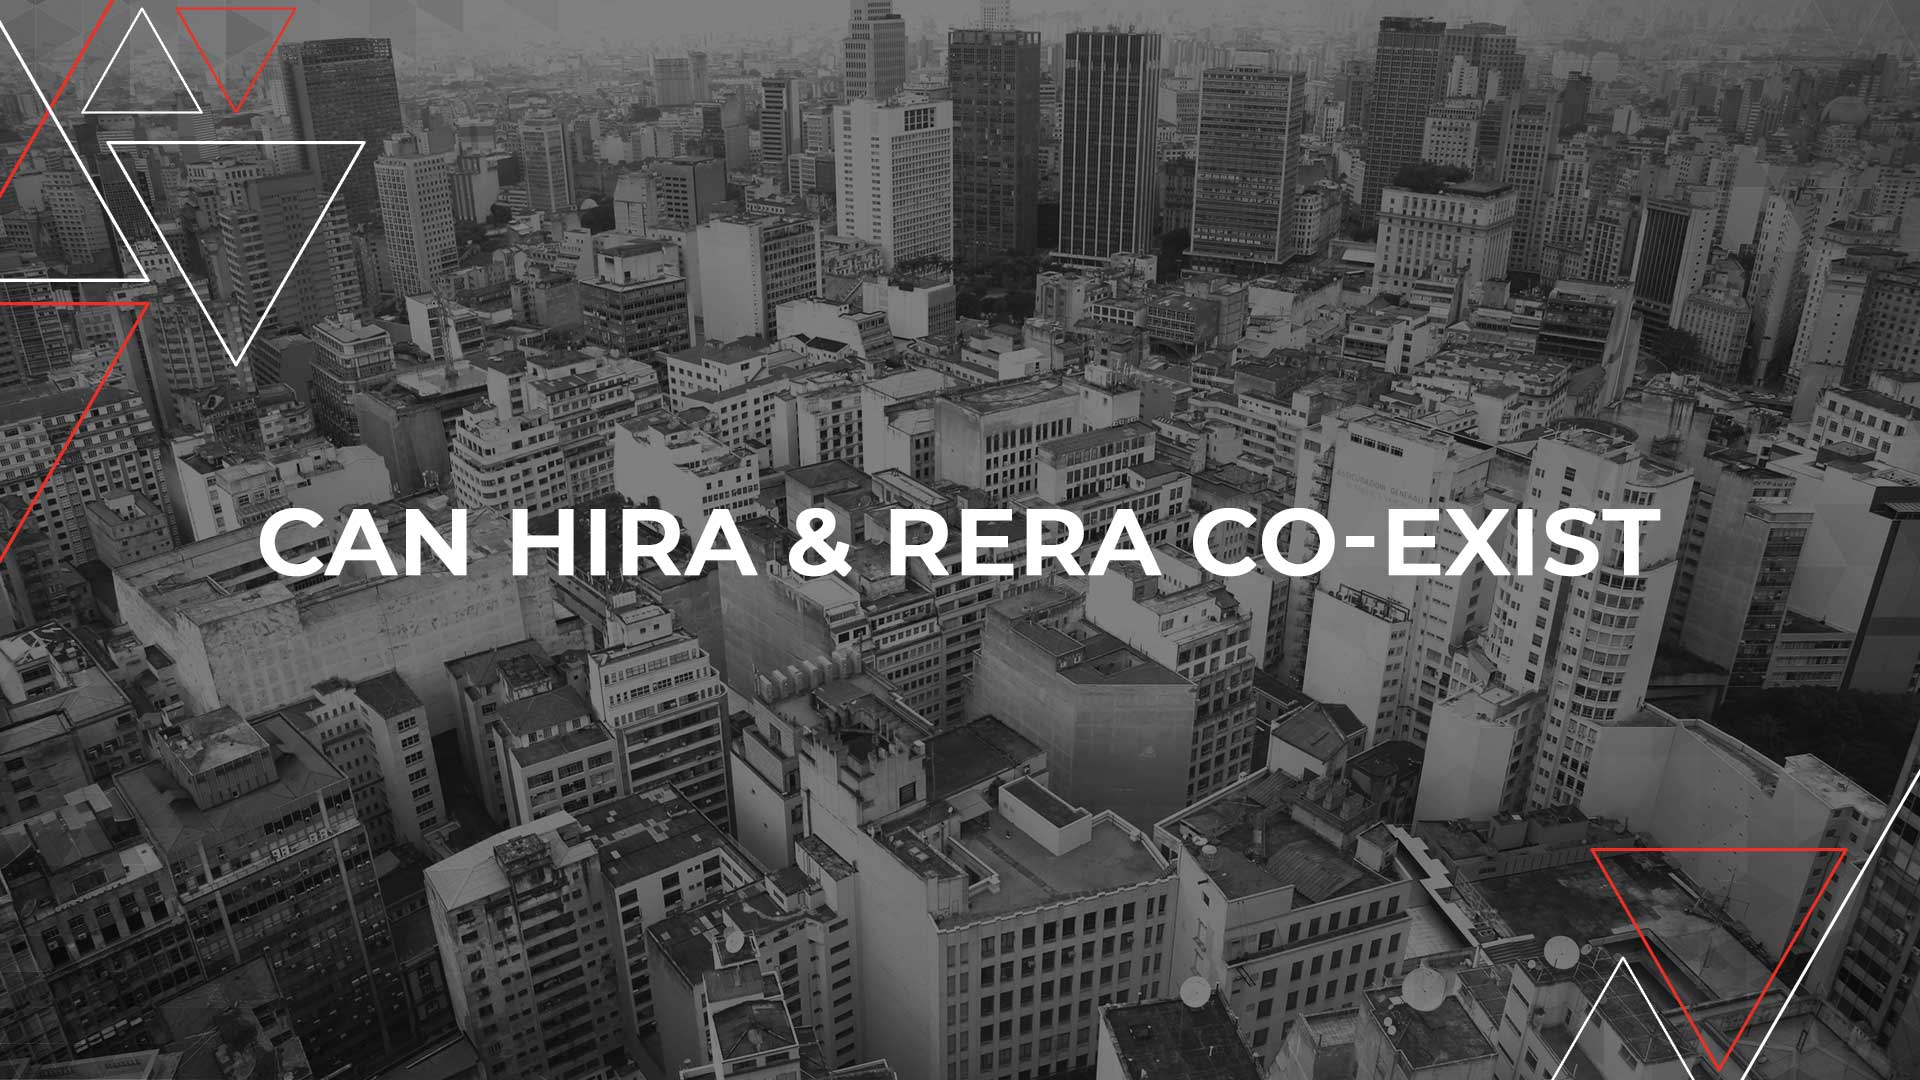 Government To Decide Whether HIRA And RERA Can Co-Exist